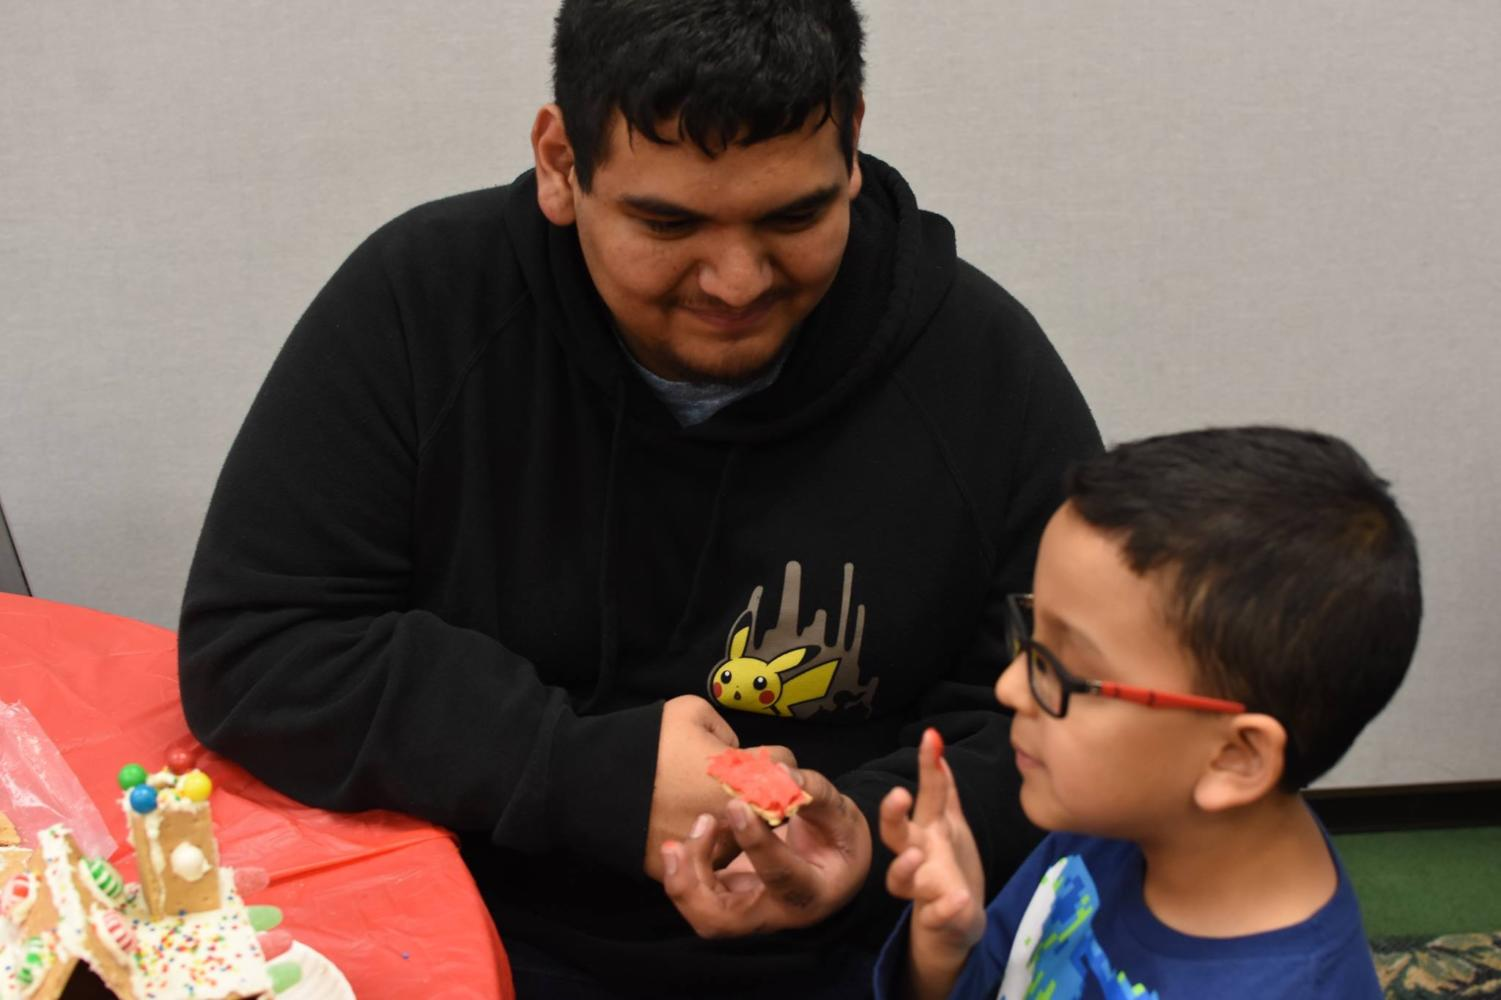 Danny Vasquez, Liberal drafting major, helps a grade schooler build a gingerbread house. Vasquez is part of the new club, Circle K International. The club is dedicated to community service and helping others.